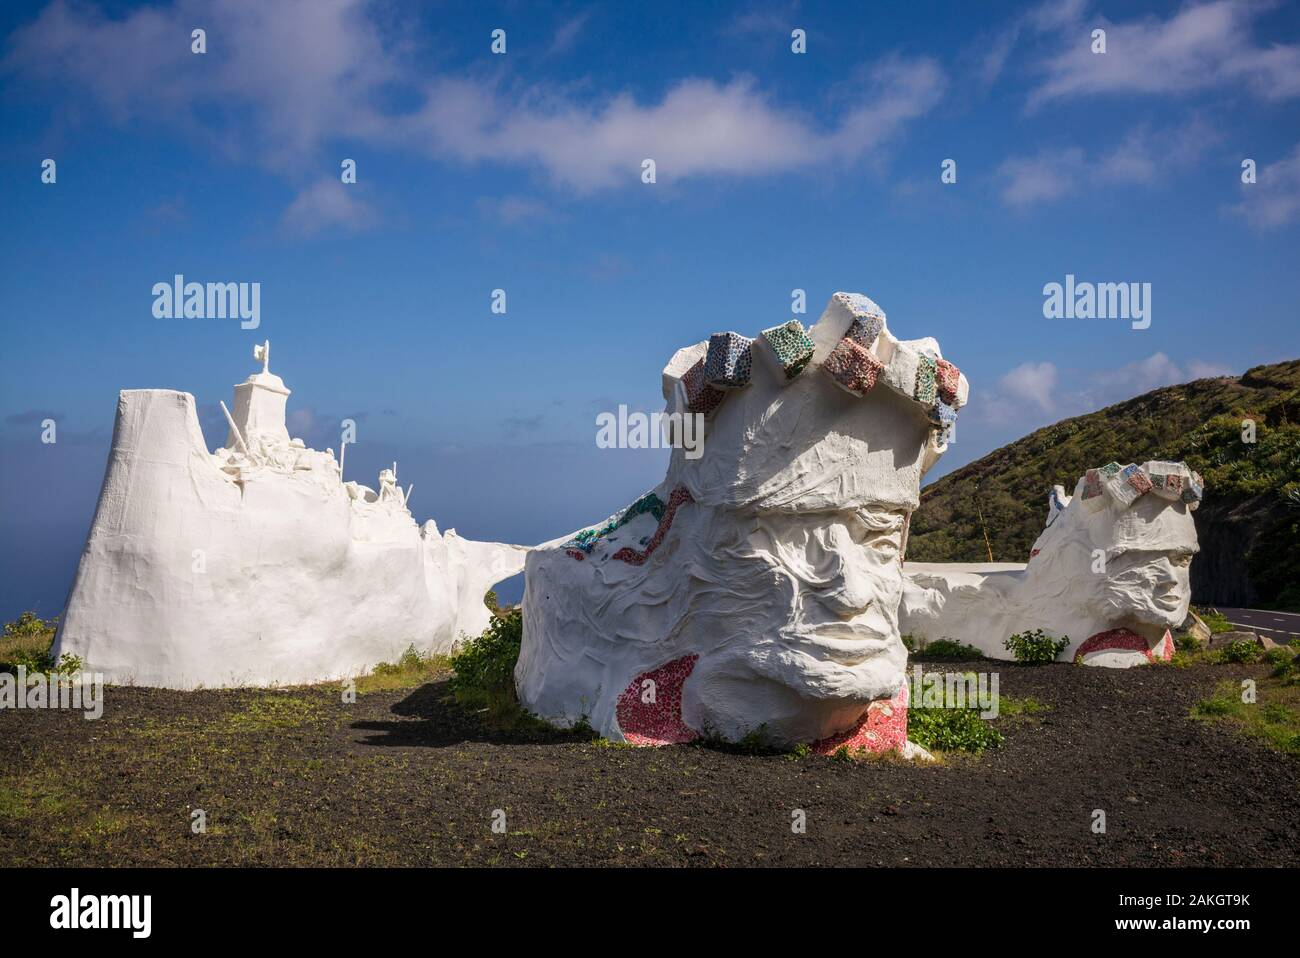 Spain, Canary Islands, El Hierro Island, Valverde, island capital, plaster statues from the traditional Three Kings Christmas celebrations Stock Photo